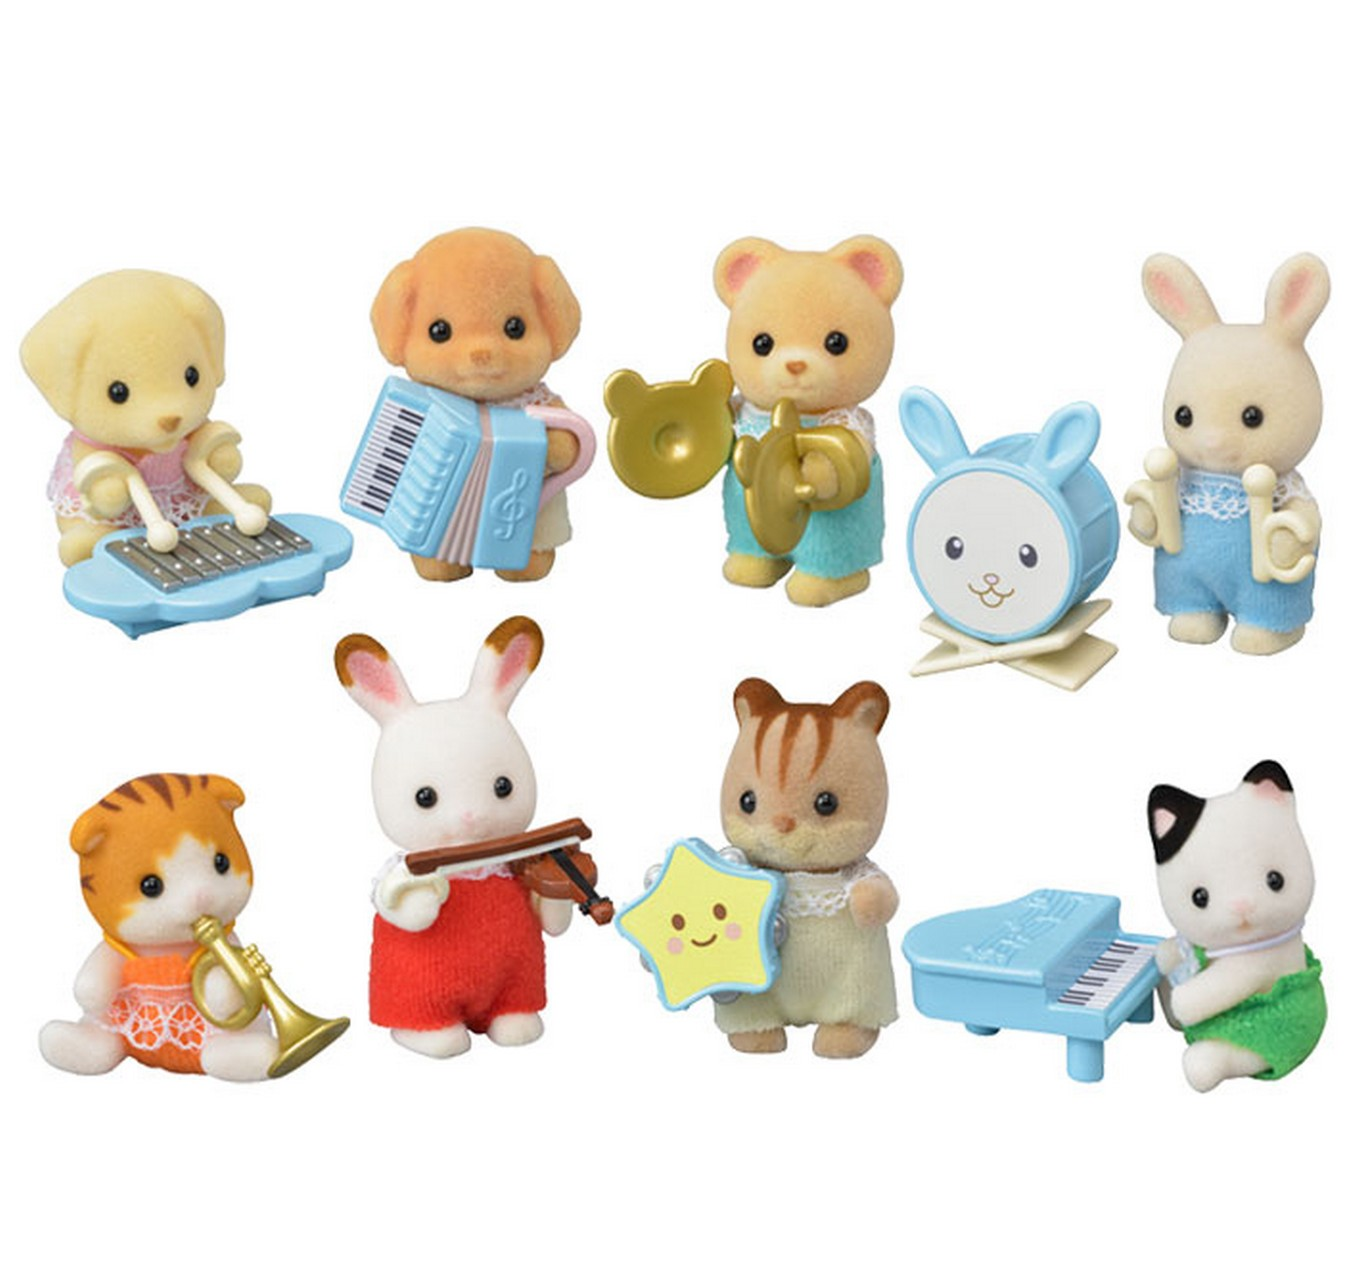 Baby Band Blind Bag - Each